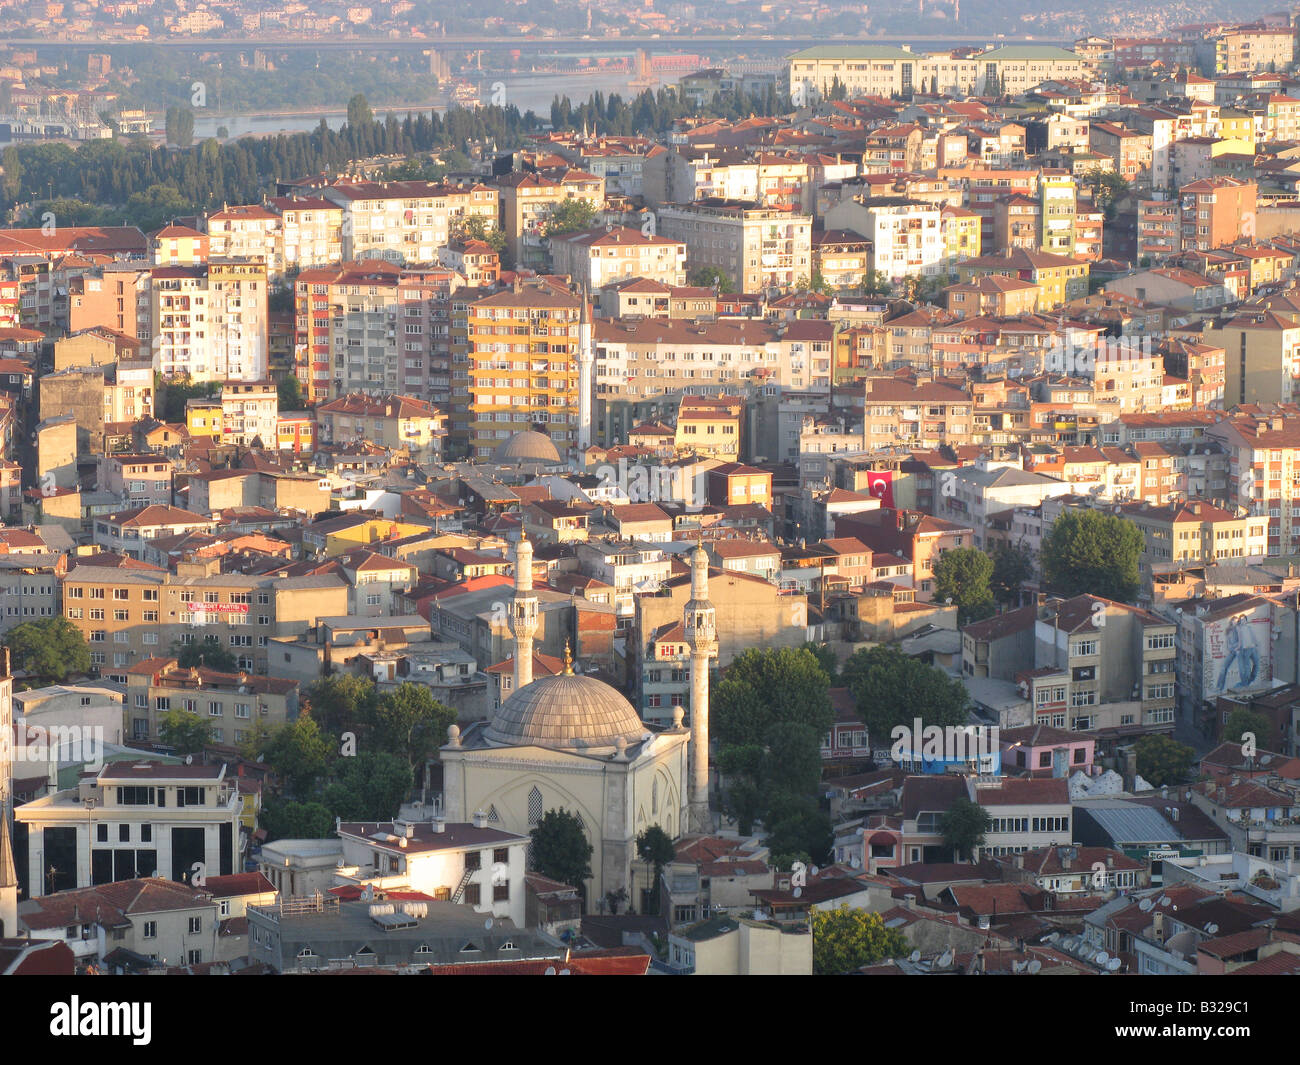 ISTANBUL, TURKEY. An early morning view over Tepebasi district from the Beyoglu district of the city. 2008. - Stock Image